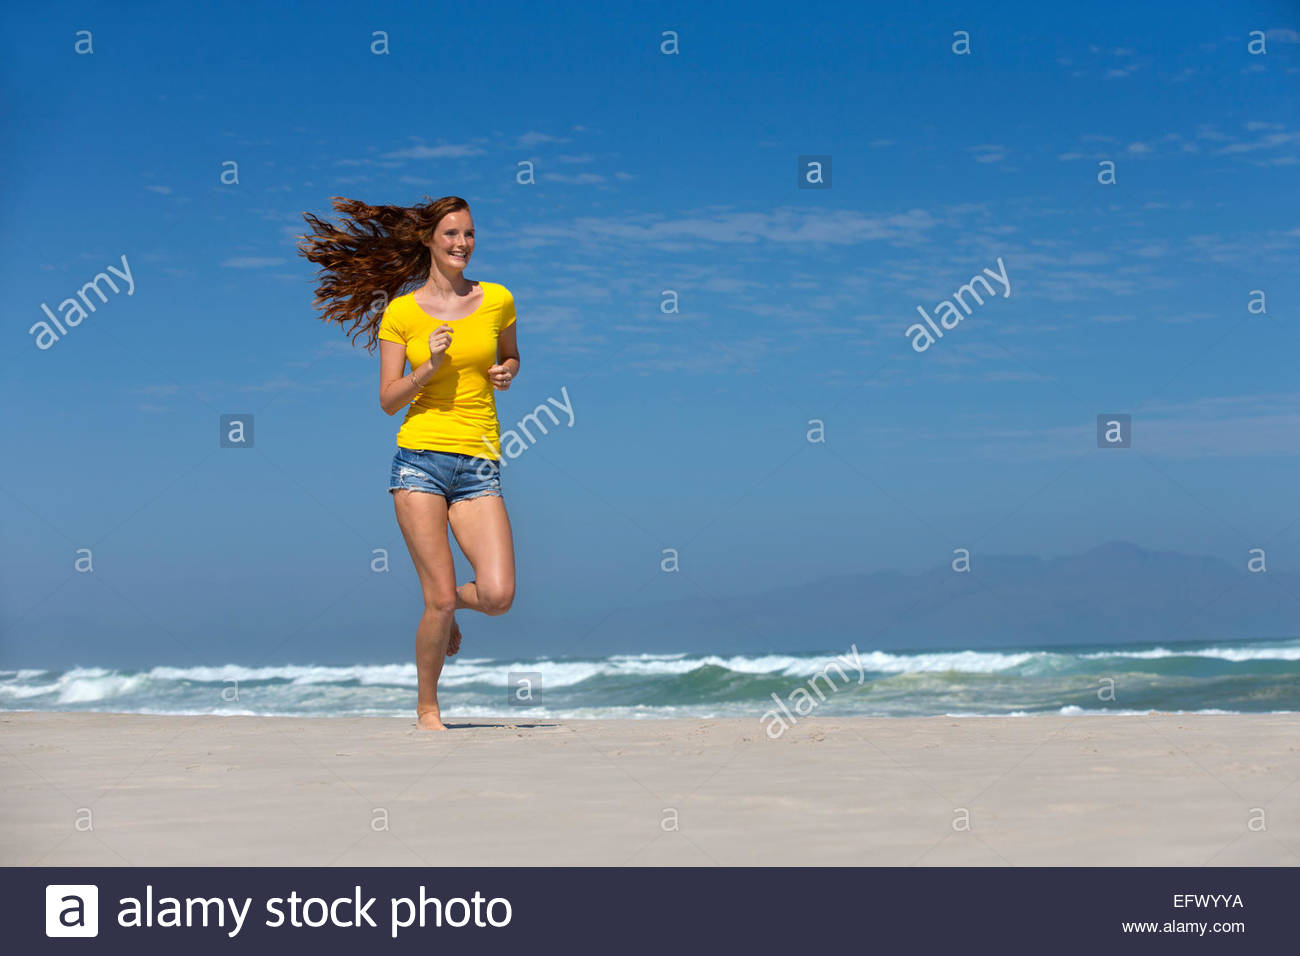 Smiling woman running on sunny beach - Stock Image